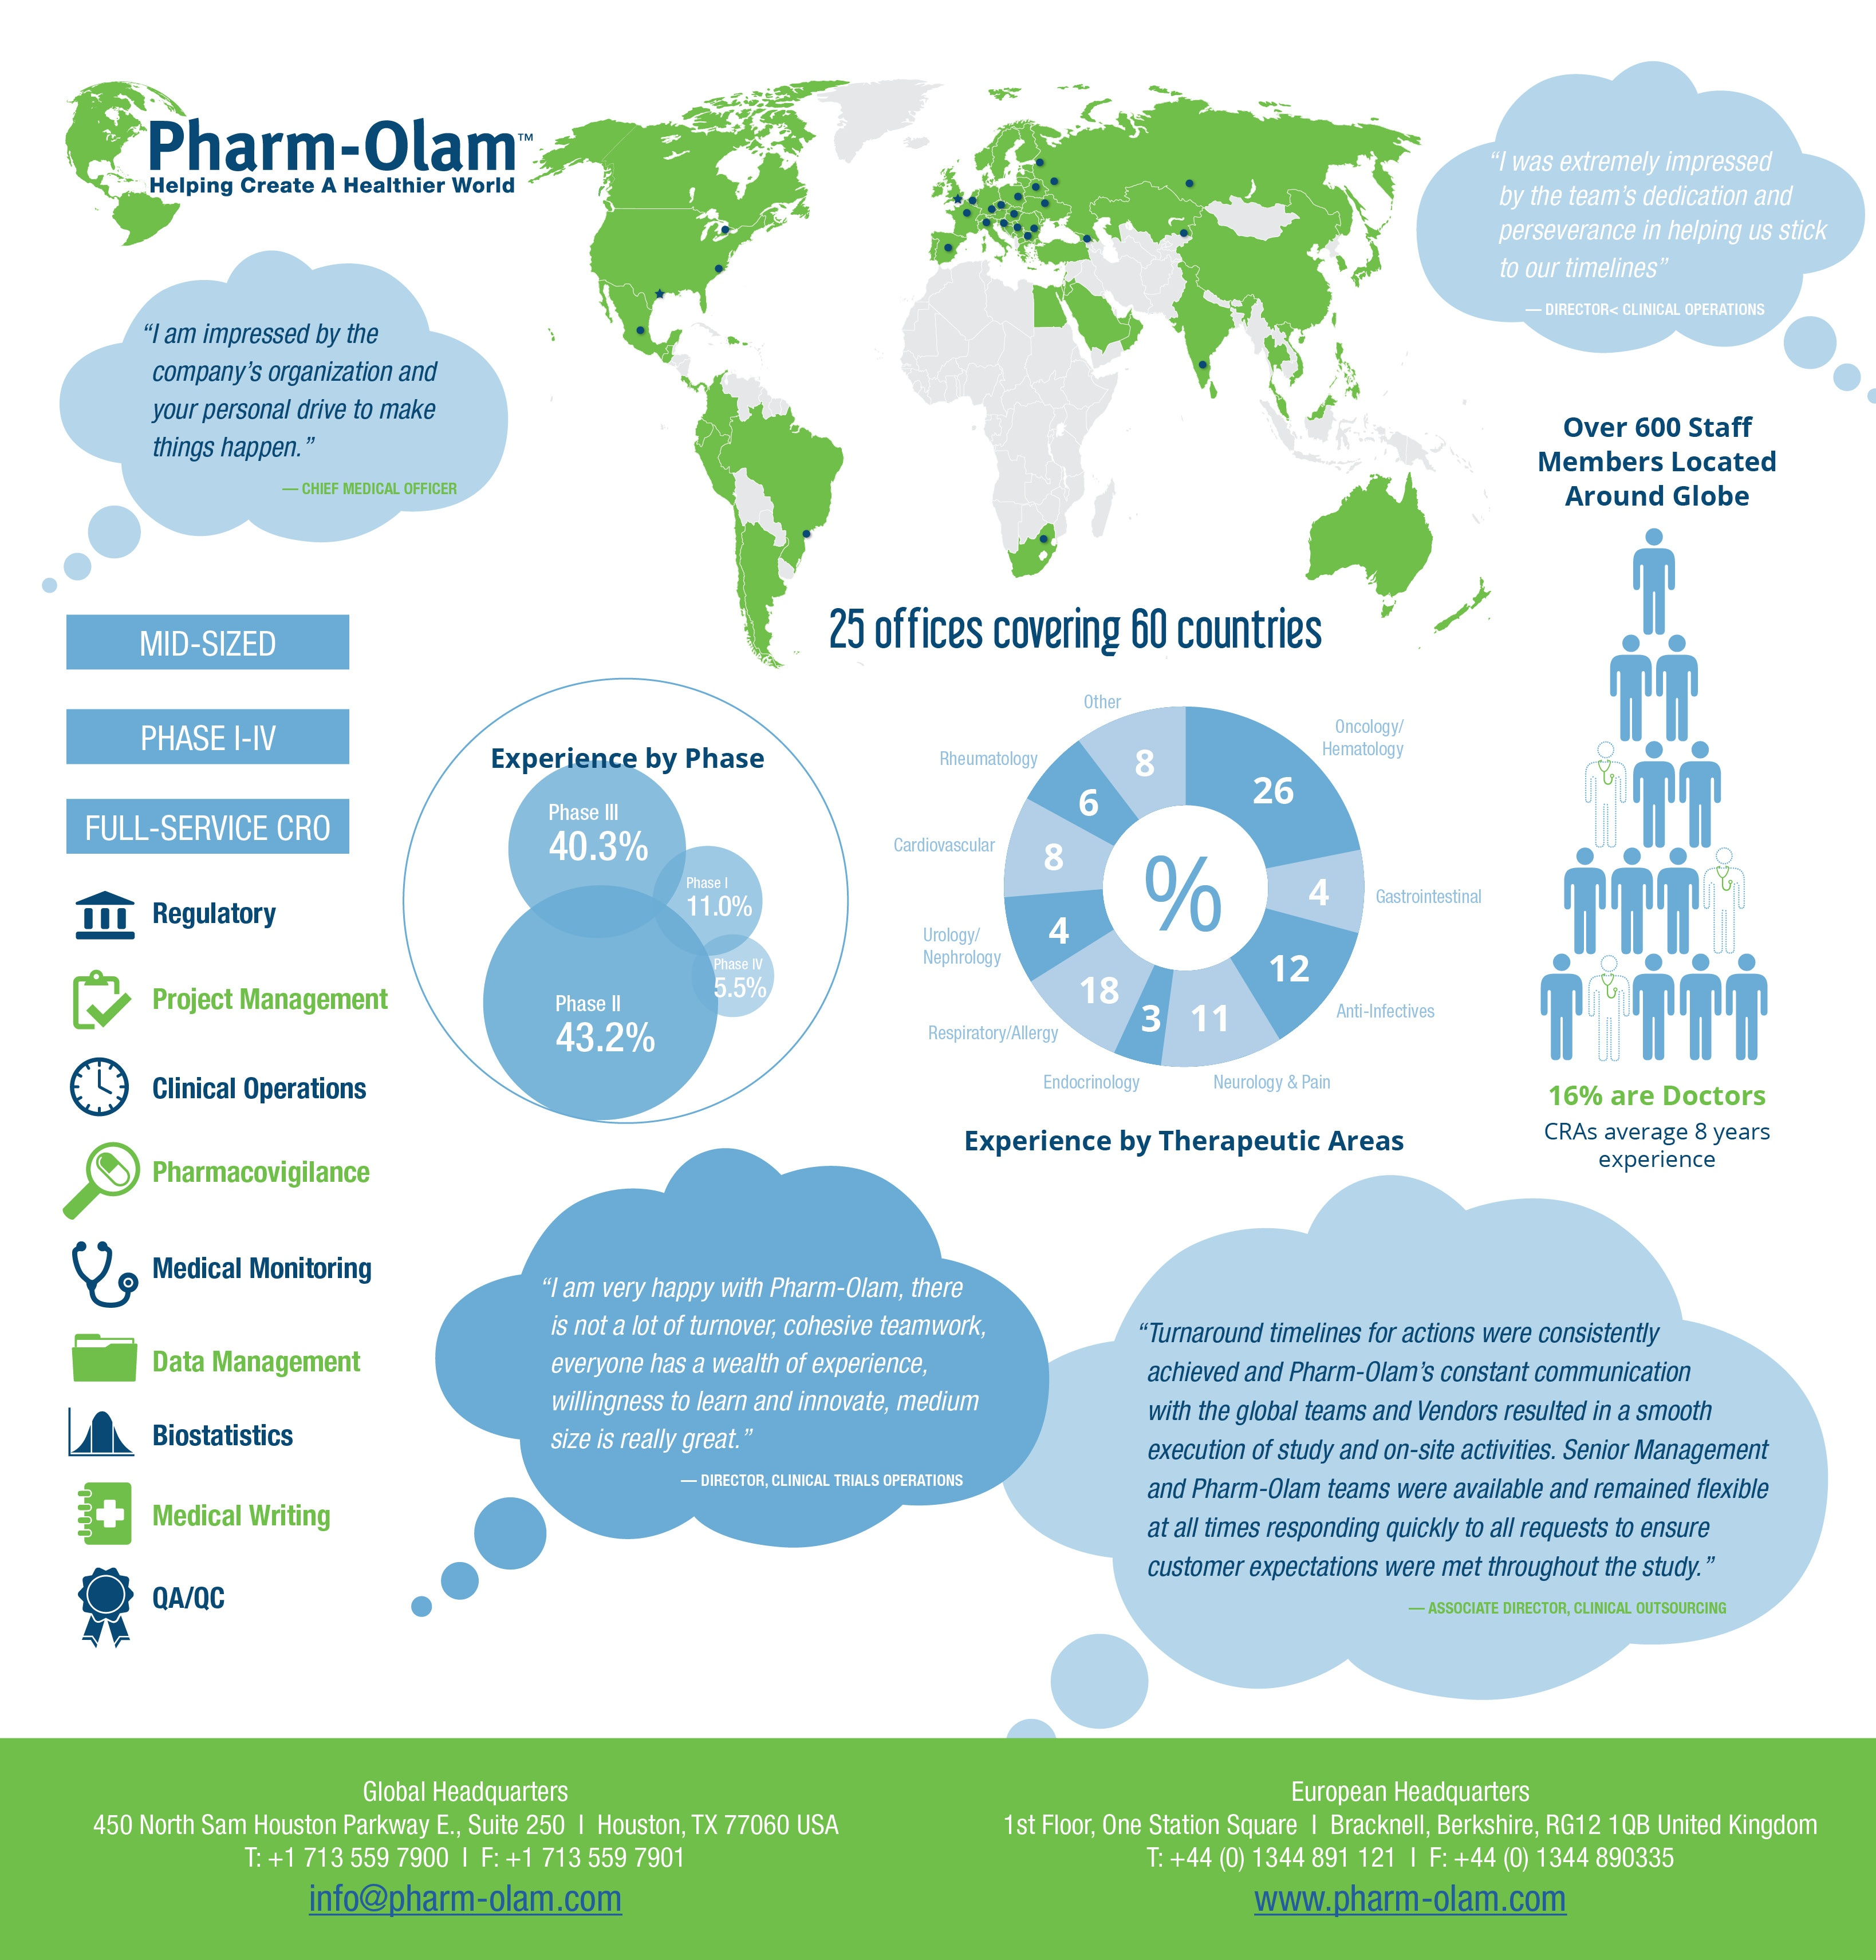 Pharm-Olam At-a-Glance